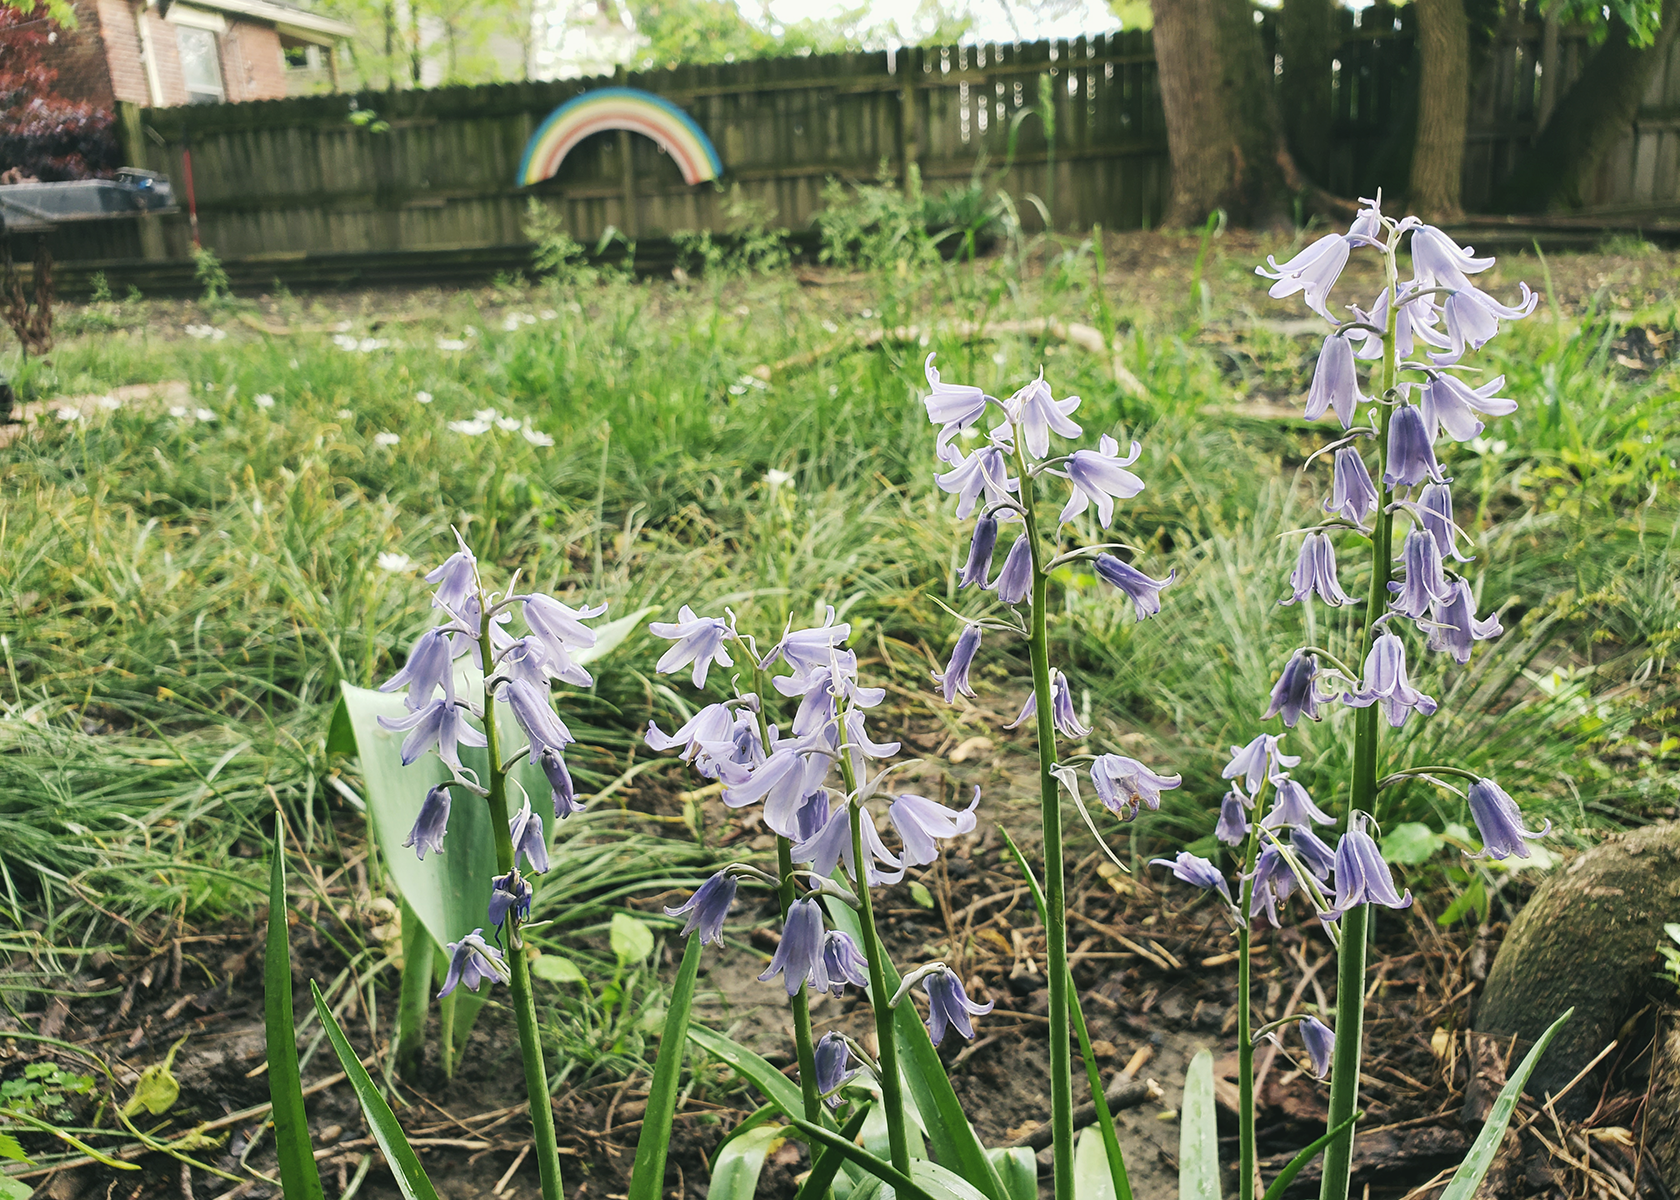 A close up of purple bell flowers in front of green grass, in the background is a fence with a large wooden rainbow hanging on it.